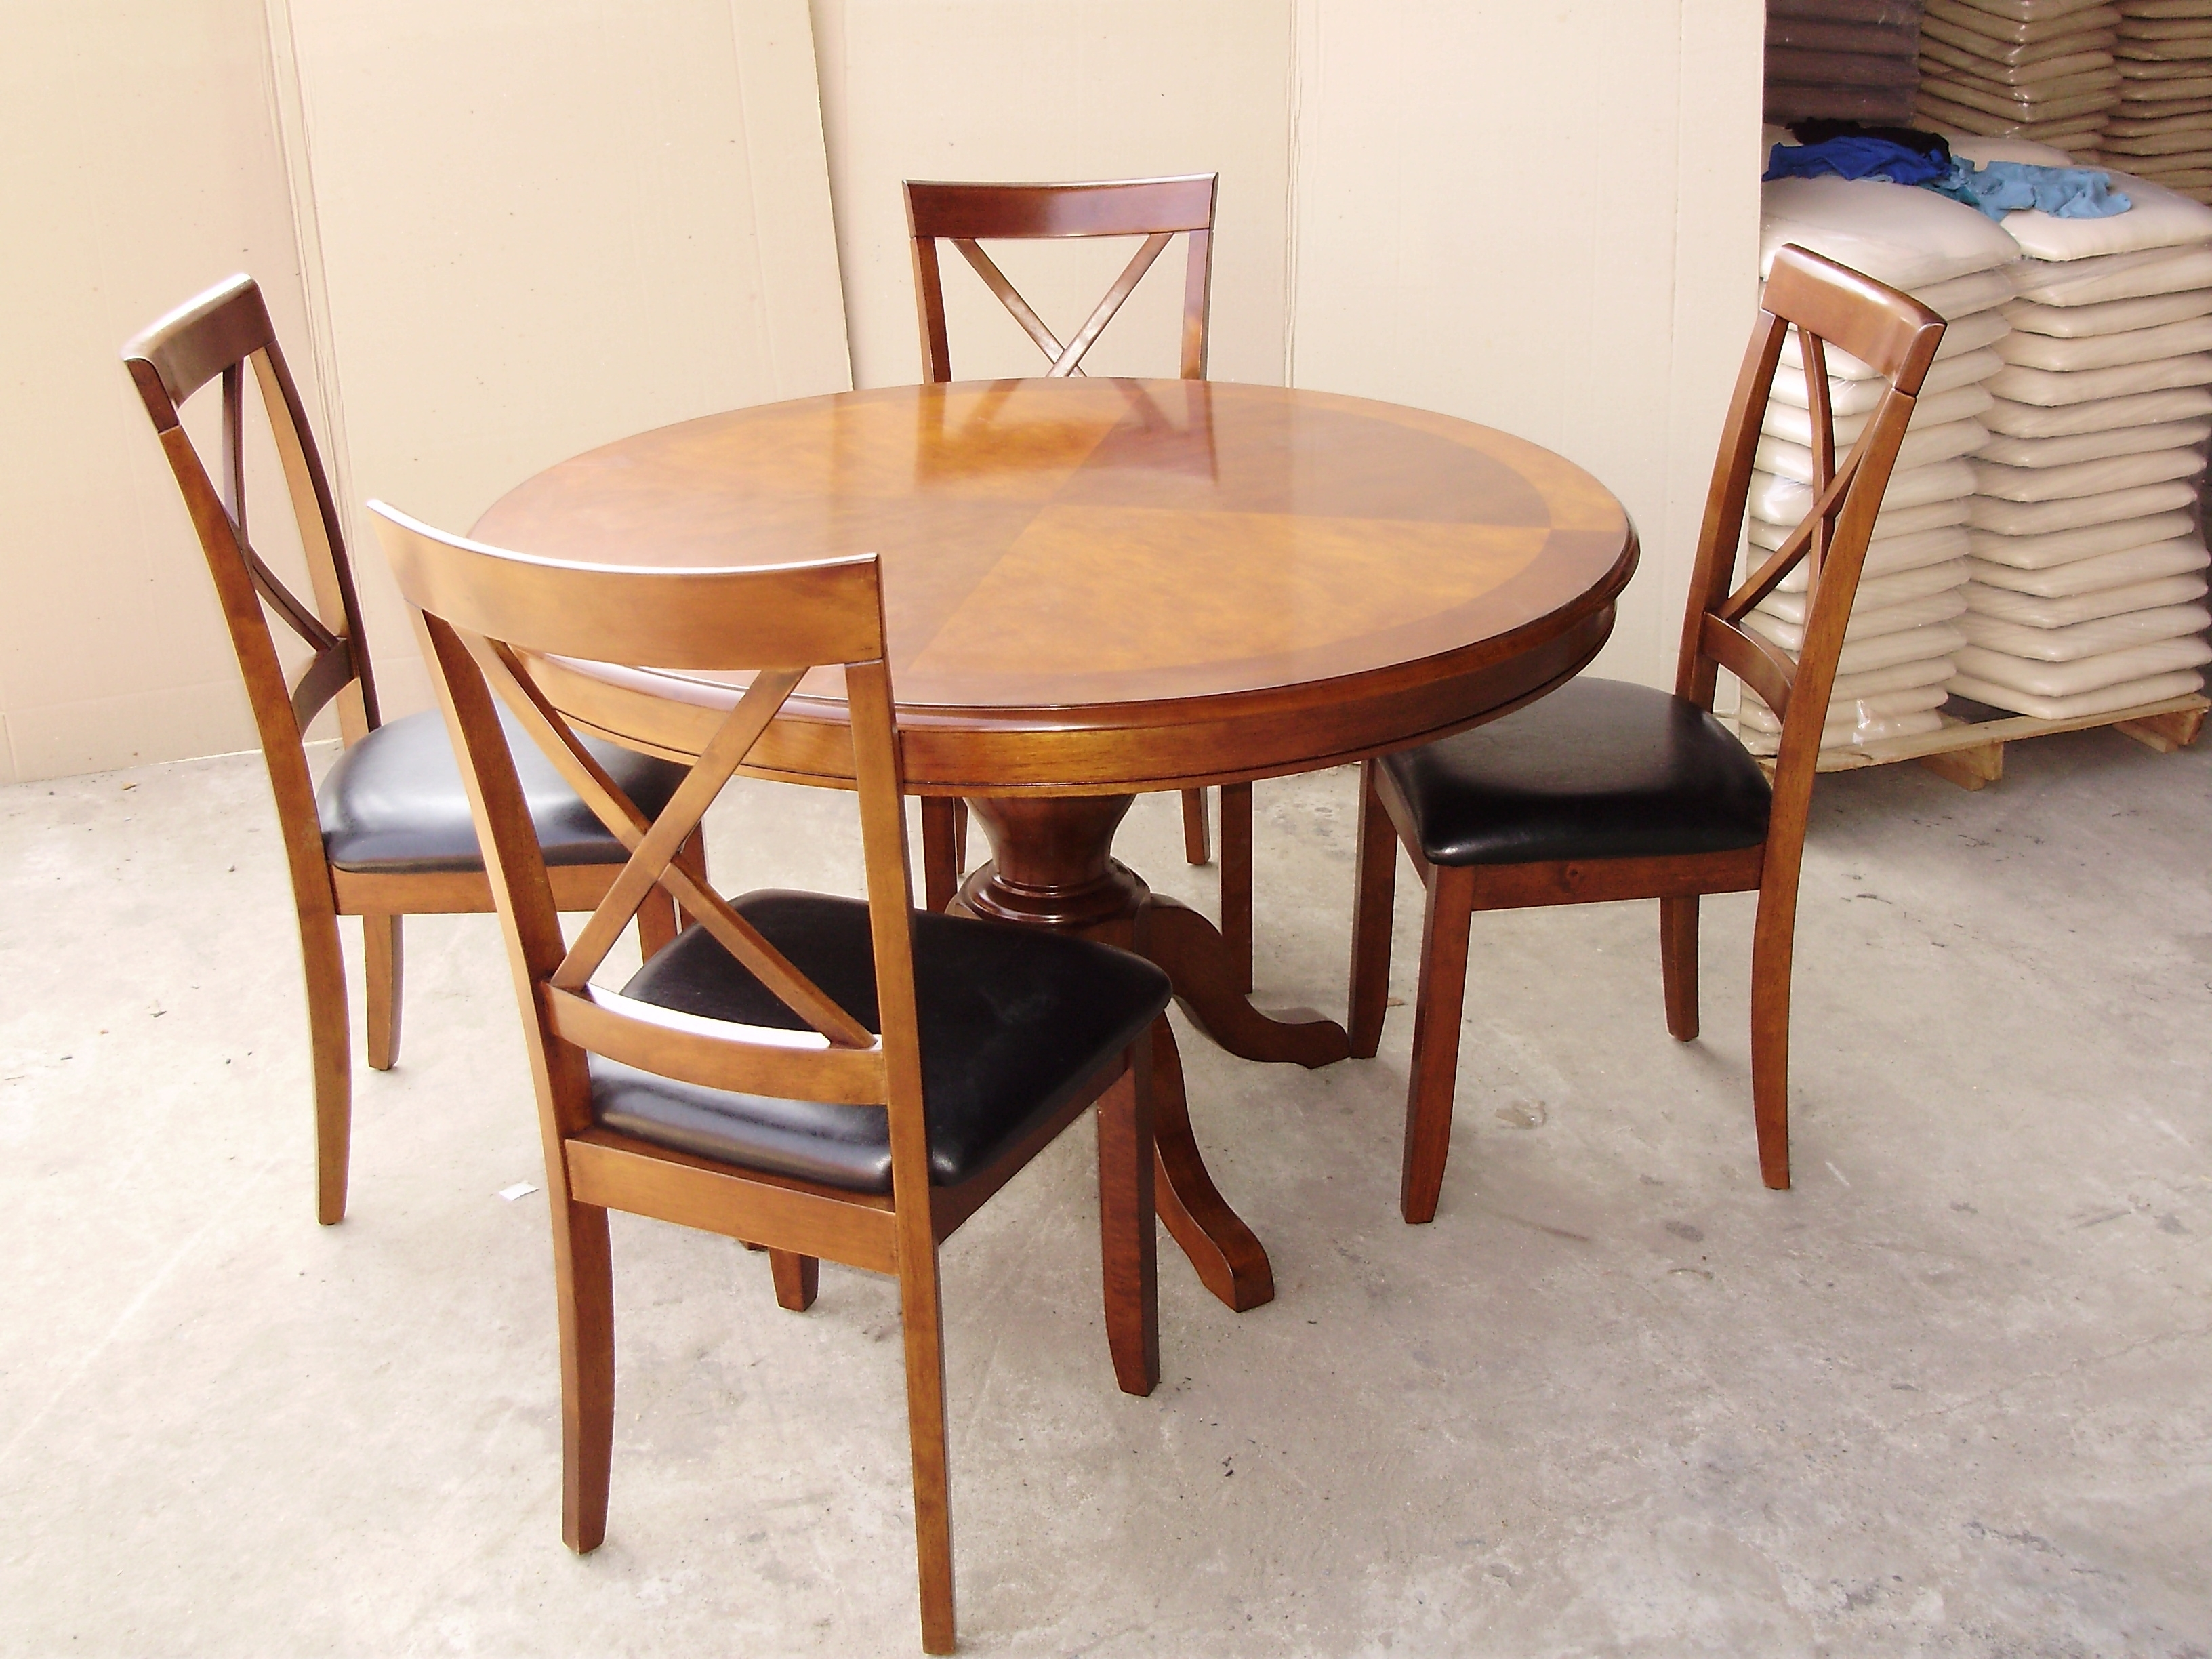 Most Popular Round Oak Dining Tables And 4 Chairs Throughout 27 Round Oak Dining Table Set, Bentley Round Oak Veneer And White (Gallery 14 of 25)